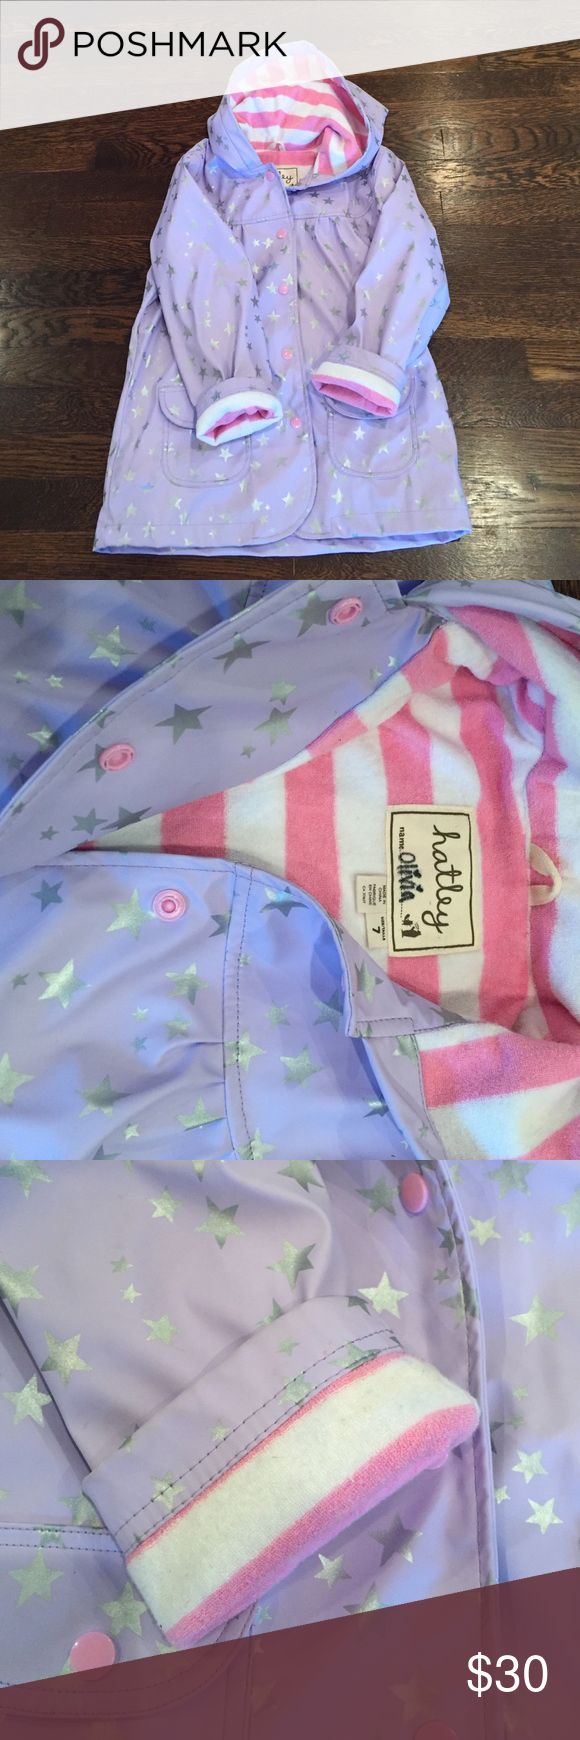 Harley Terrycloth lined Raincoat Adorable and cozy raincoat. Completely lined with terry cloth and high quality snaps. Hatley Jackets & Coats Raincoats